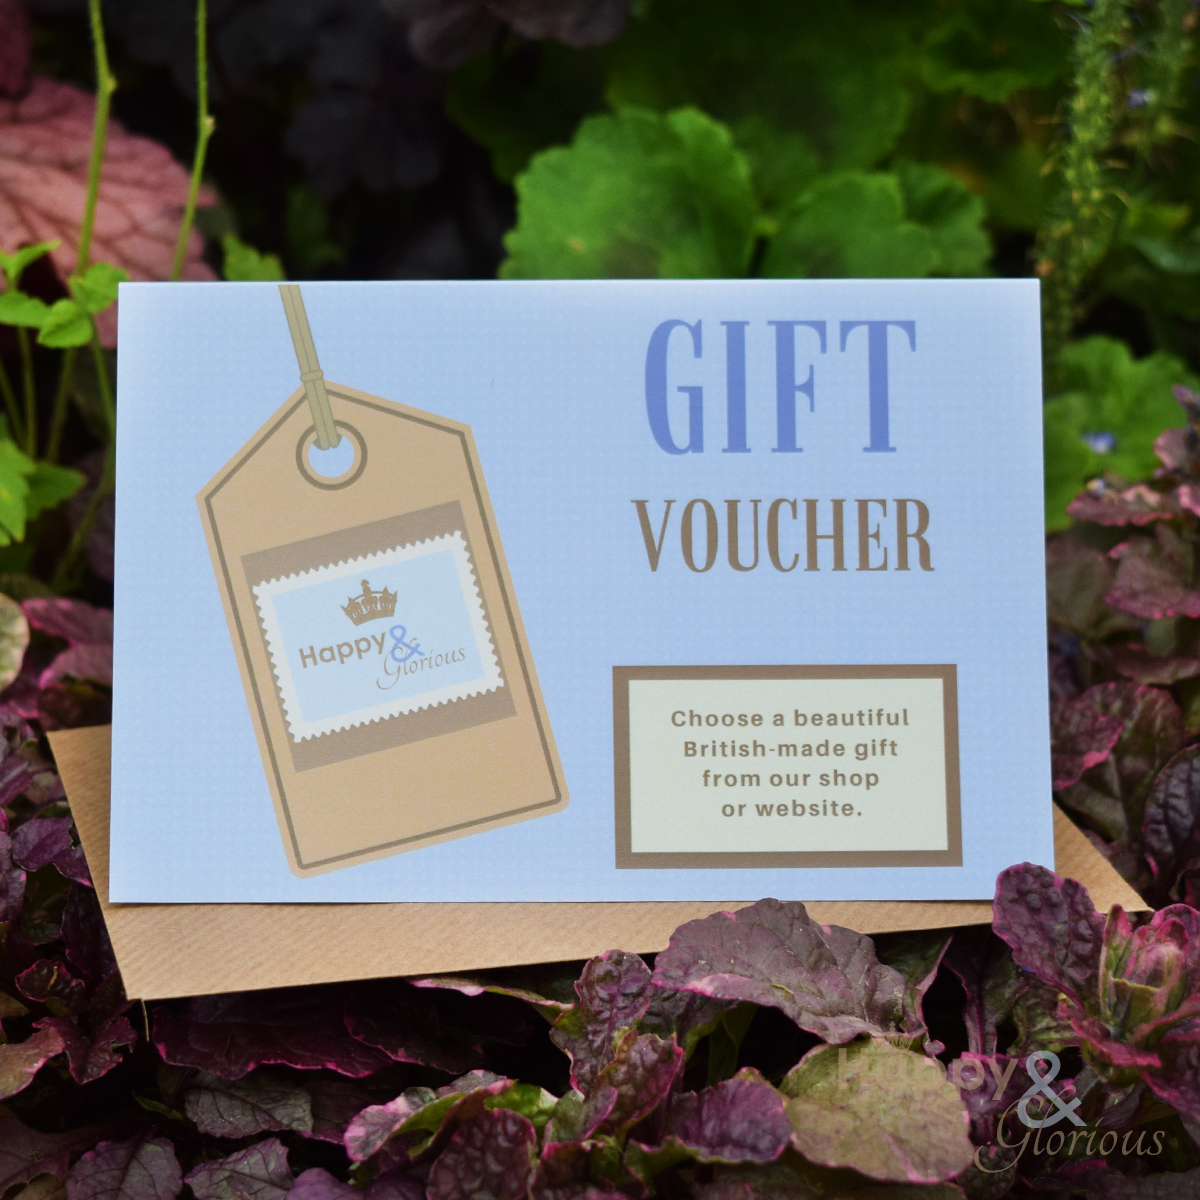 Subscription boxes and gift vouchers